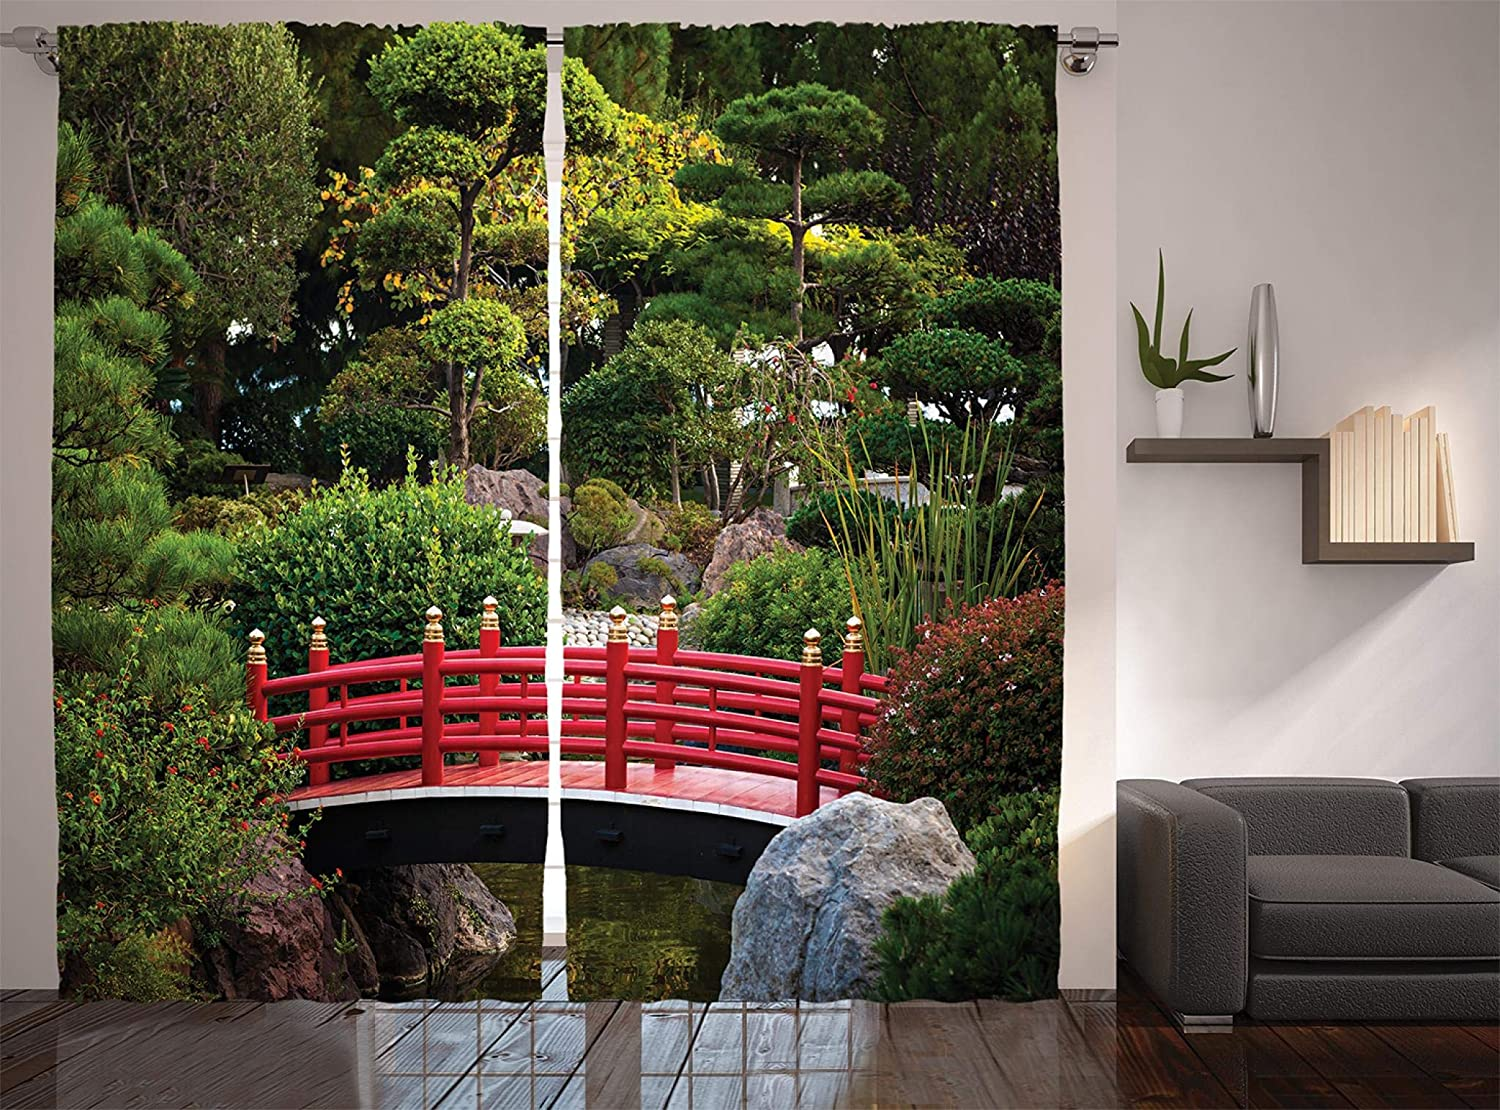 """Ambesonne Japanese Curtains, Bridge Over Pond in Japanese Garden Monte Carlo Monaco with Trees and Plants, Living Room Bedroom Window Drapes 2 Panel Set, 108"""" X 90"""", Green Red"""